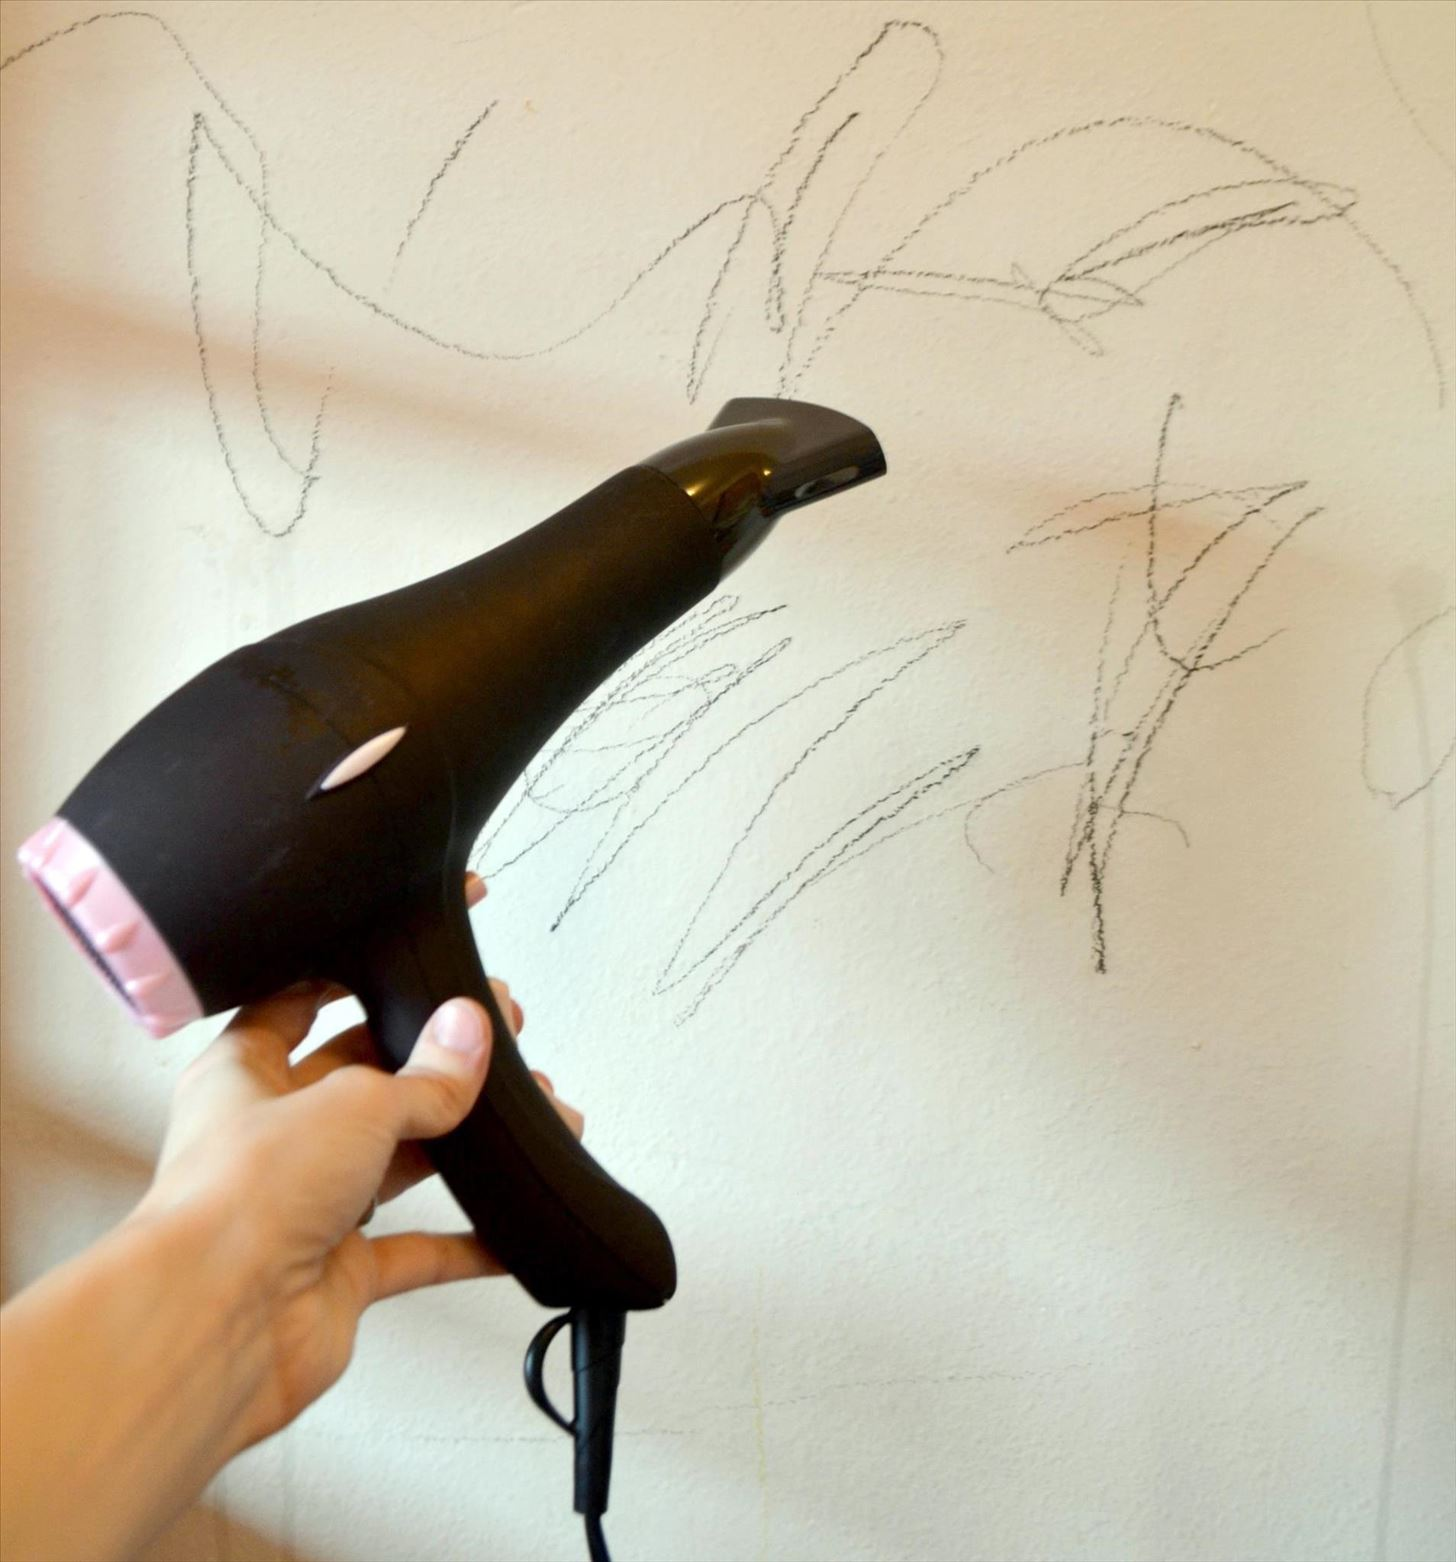 10 Ultra-Practical Uses for Your Hair Dryer (Besides the Obvious)